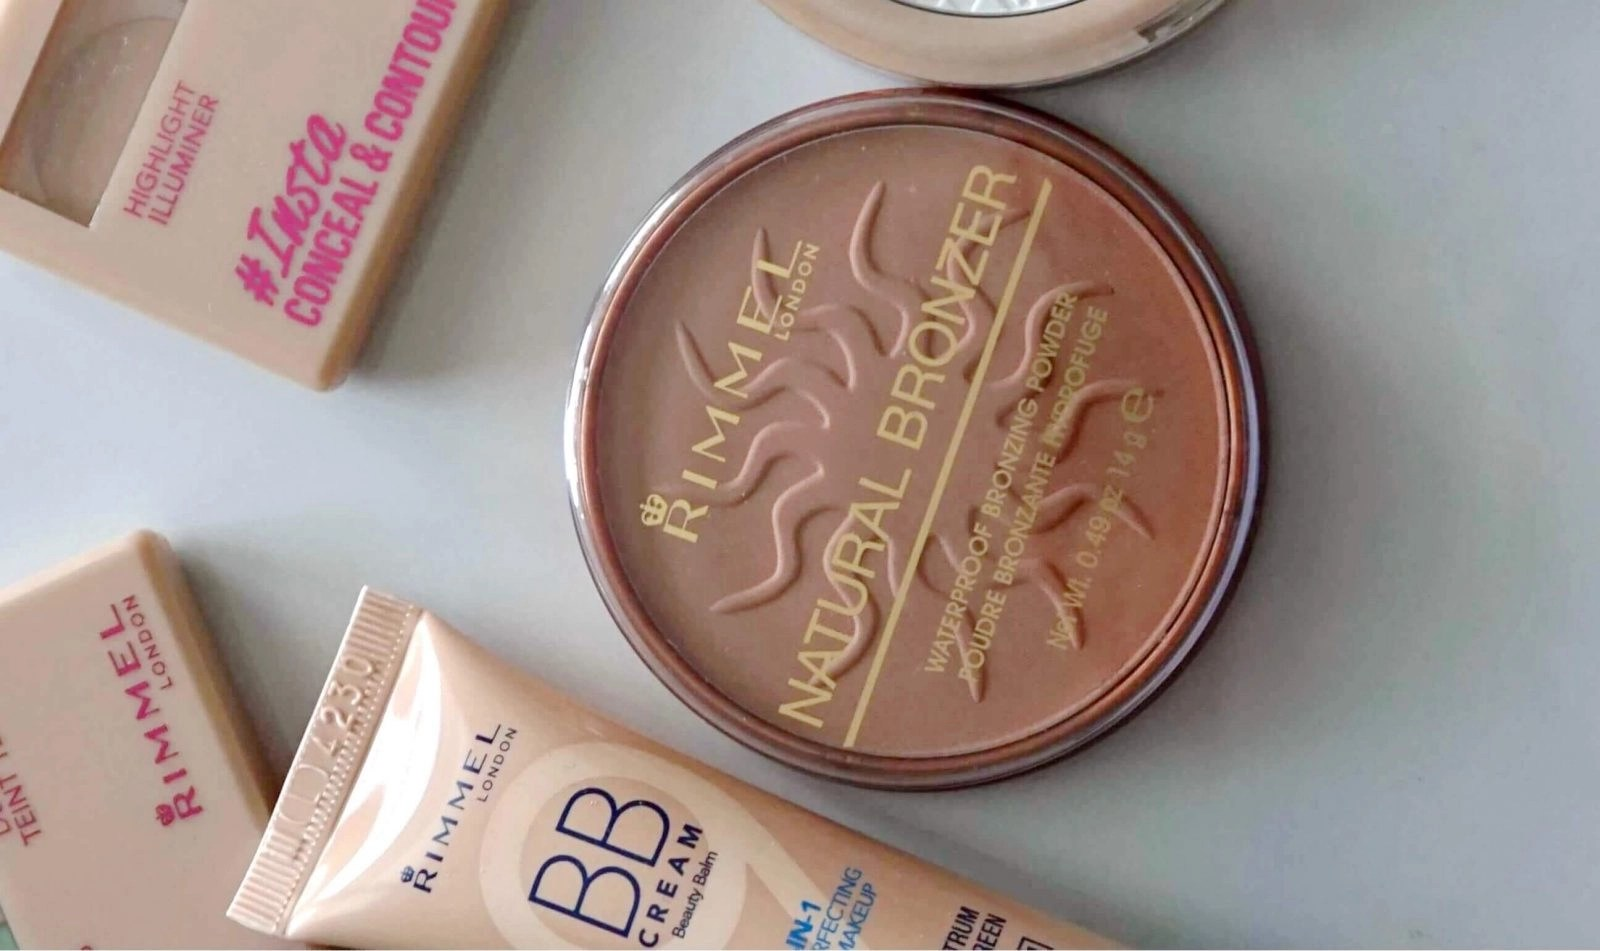 Rimmel Natural Bronzer in Sun Light